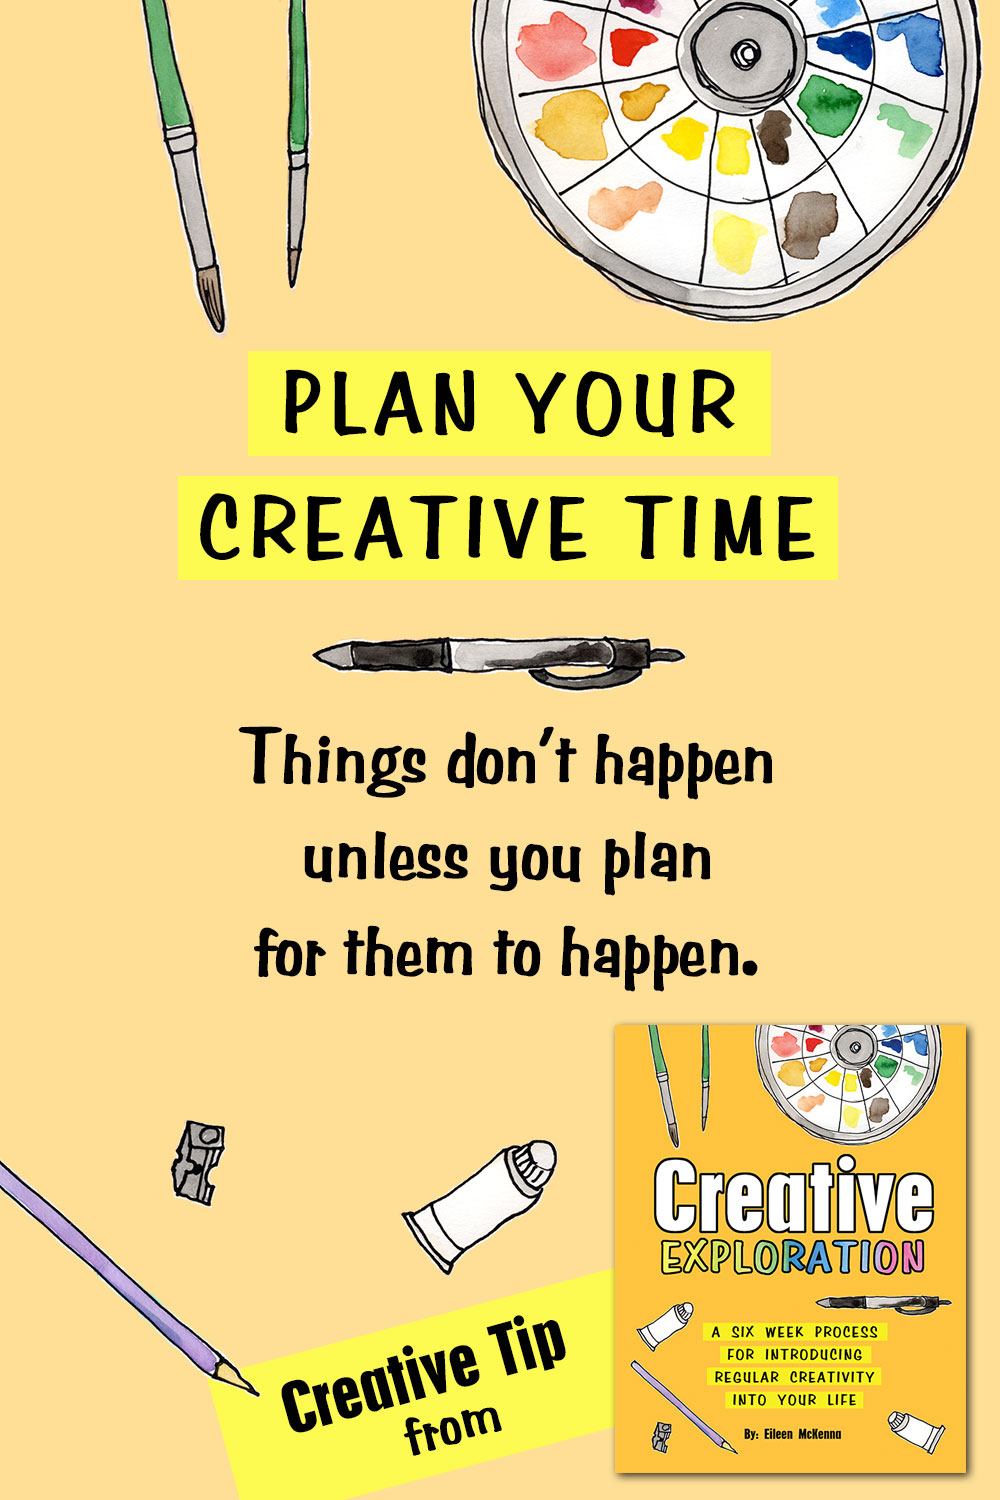 Plan your creative time  | regular creative practice | how to be creative | creative exploration